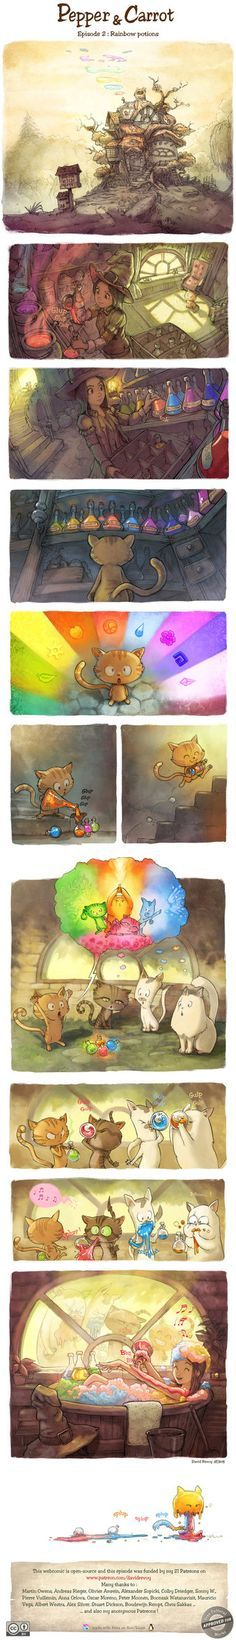 'Pepper and Carrot' Episode 2 : Rainbow potions by Deevad on DeviantArt